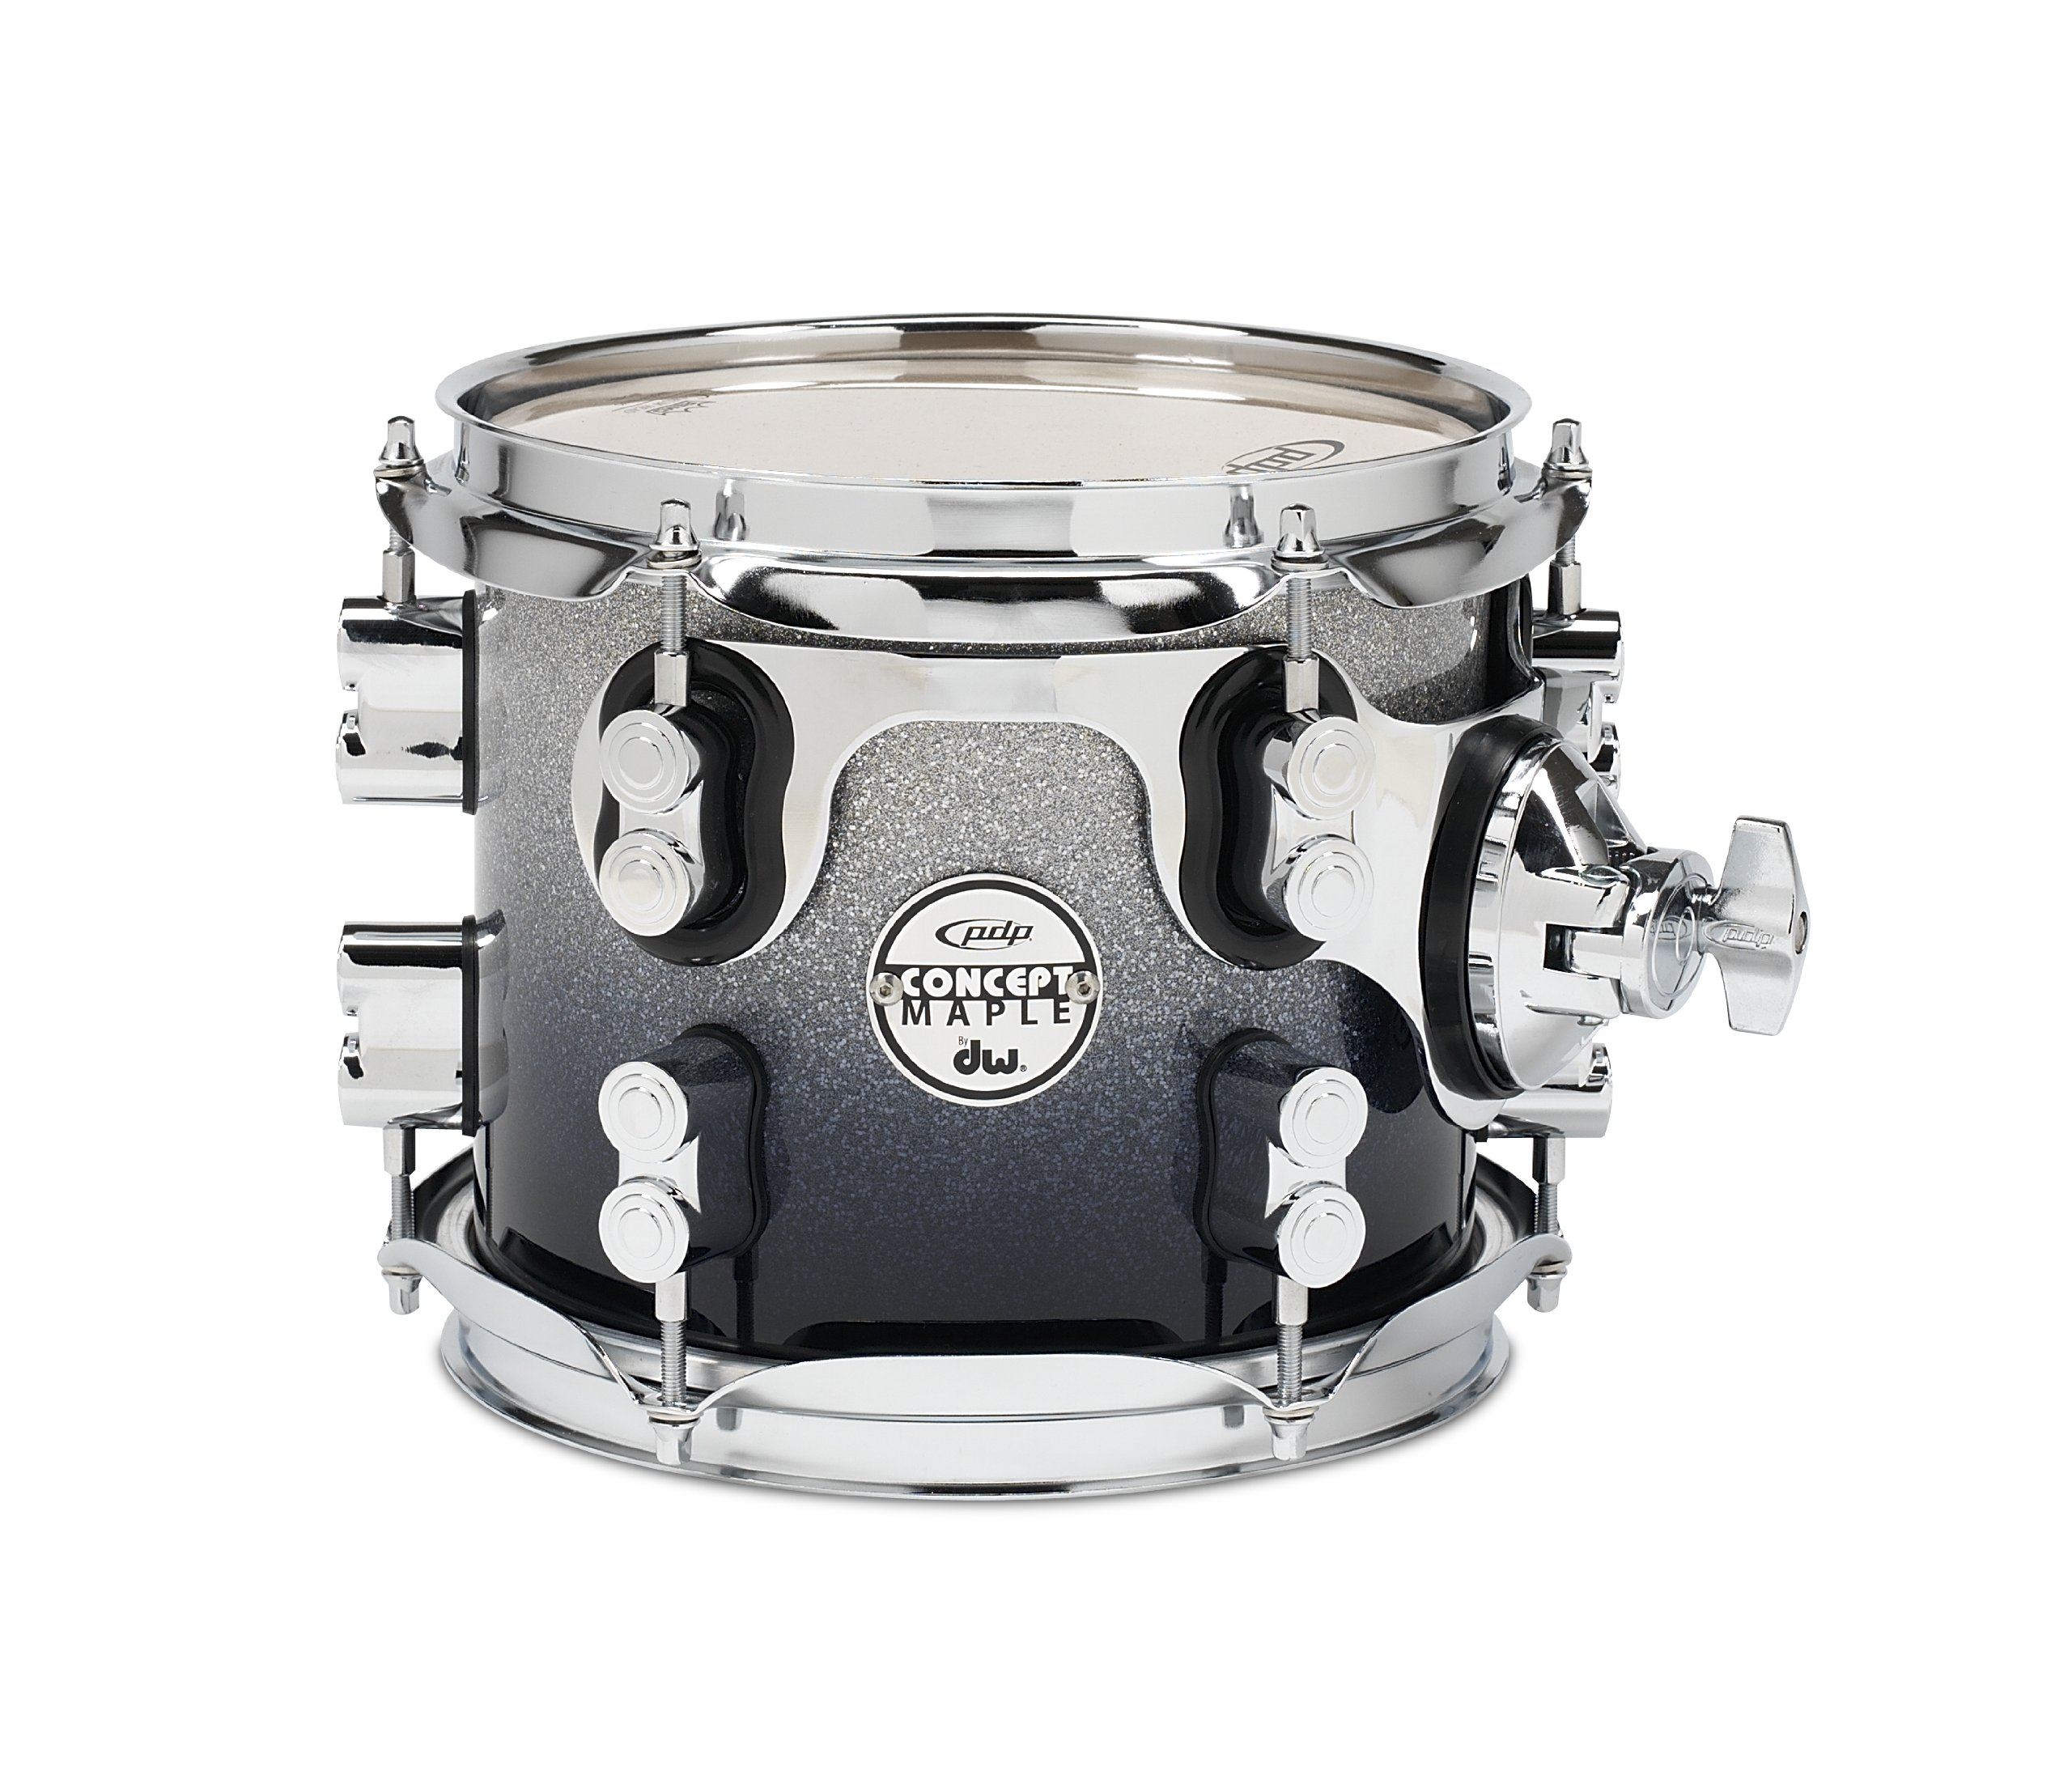 Pacific Drums PDCM0708STSB 7 x 8 Inches Tom with Chrome Hardware - Silver to Black Fade